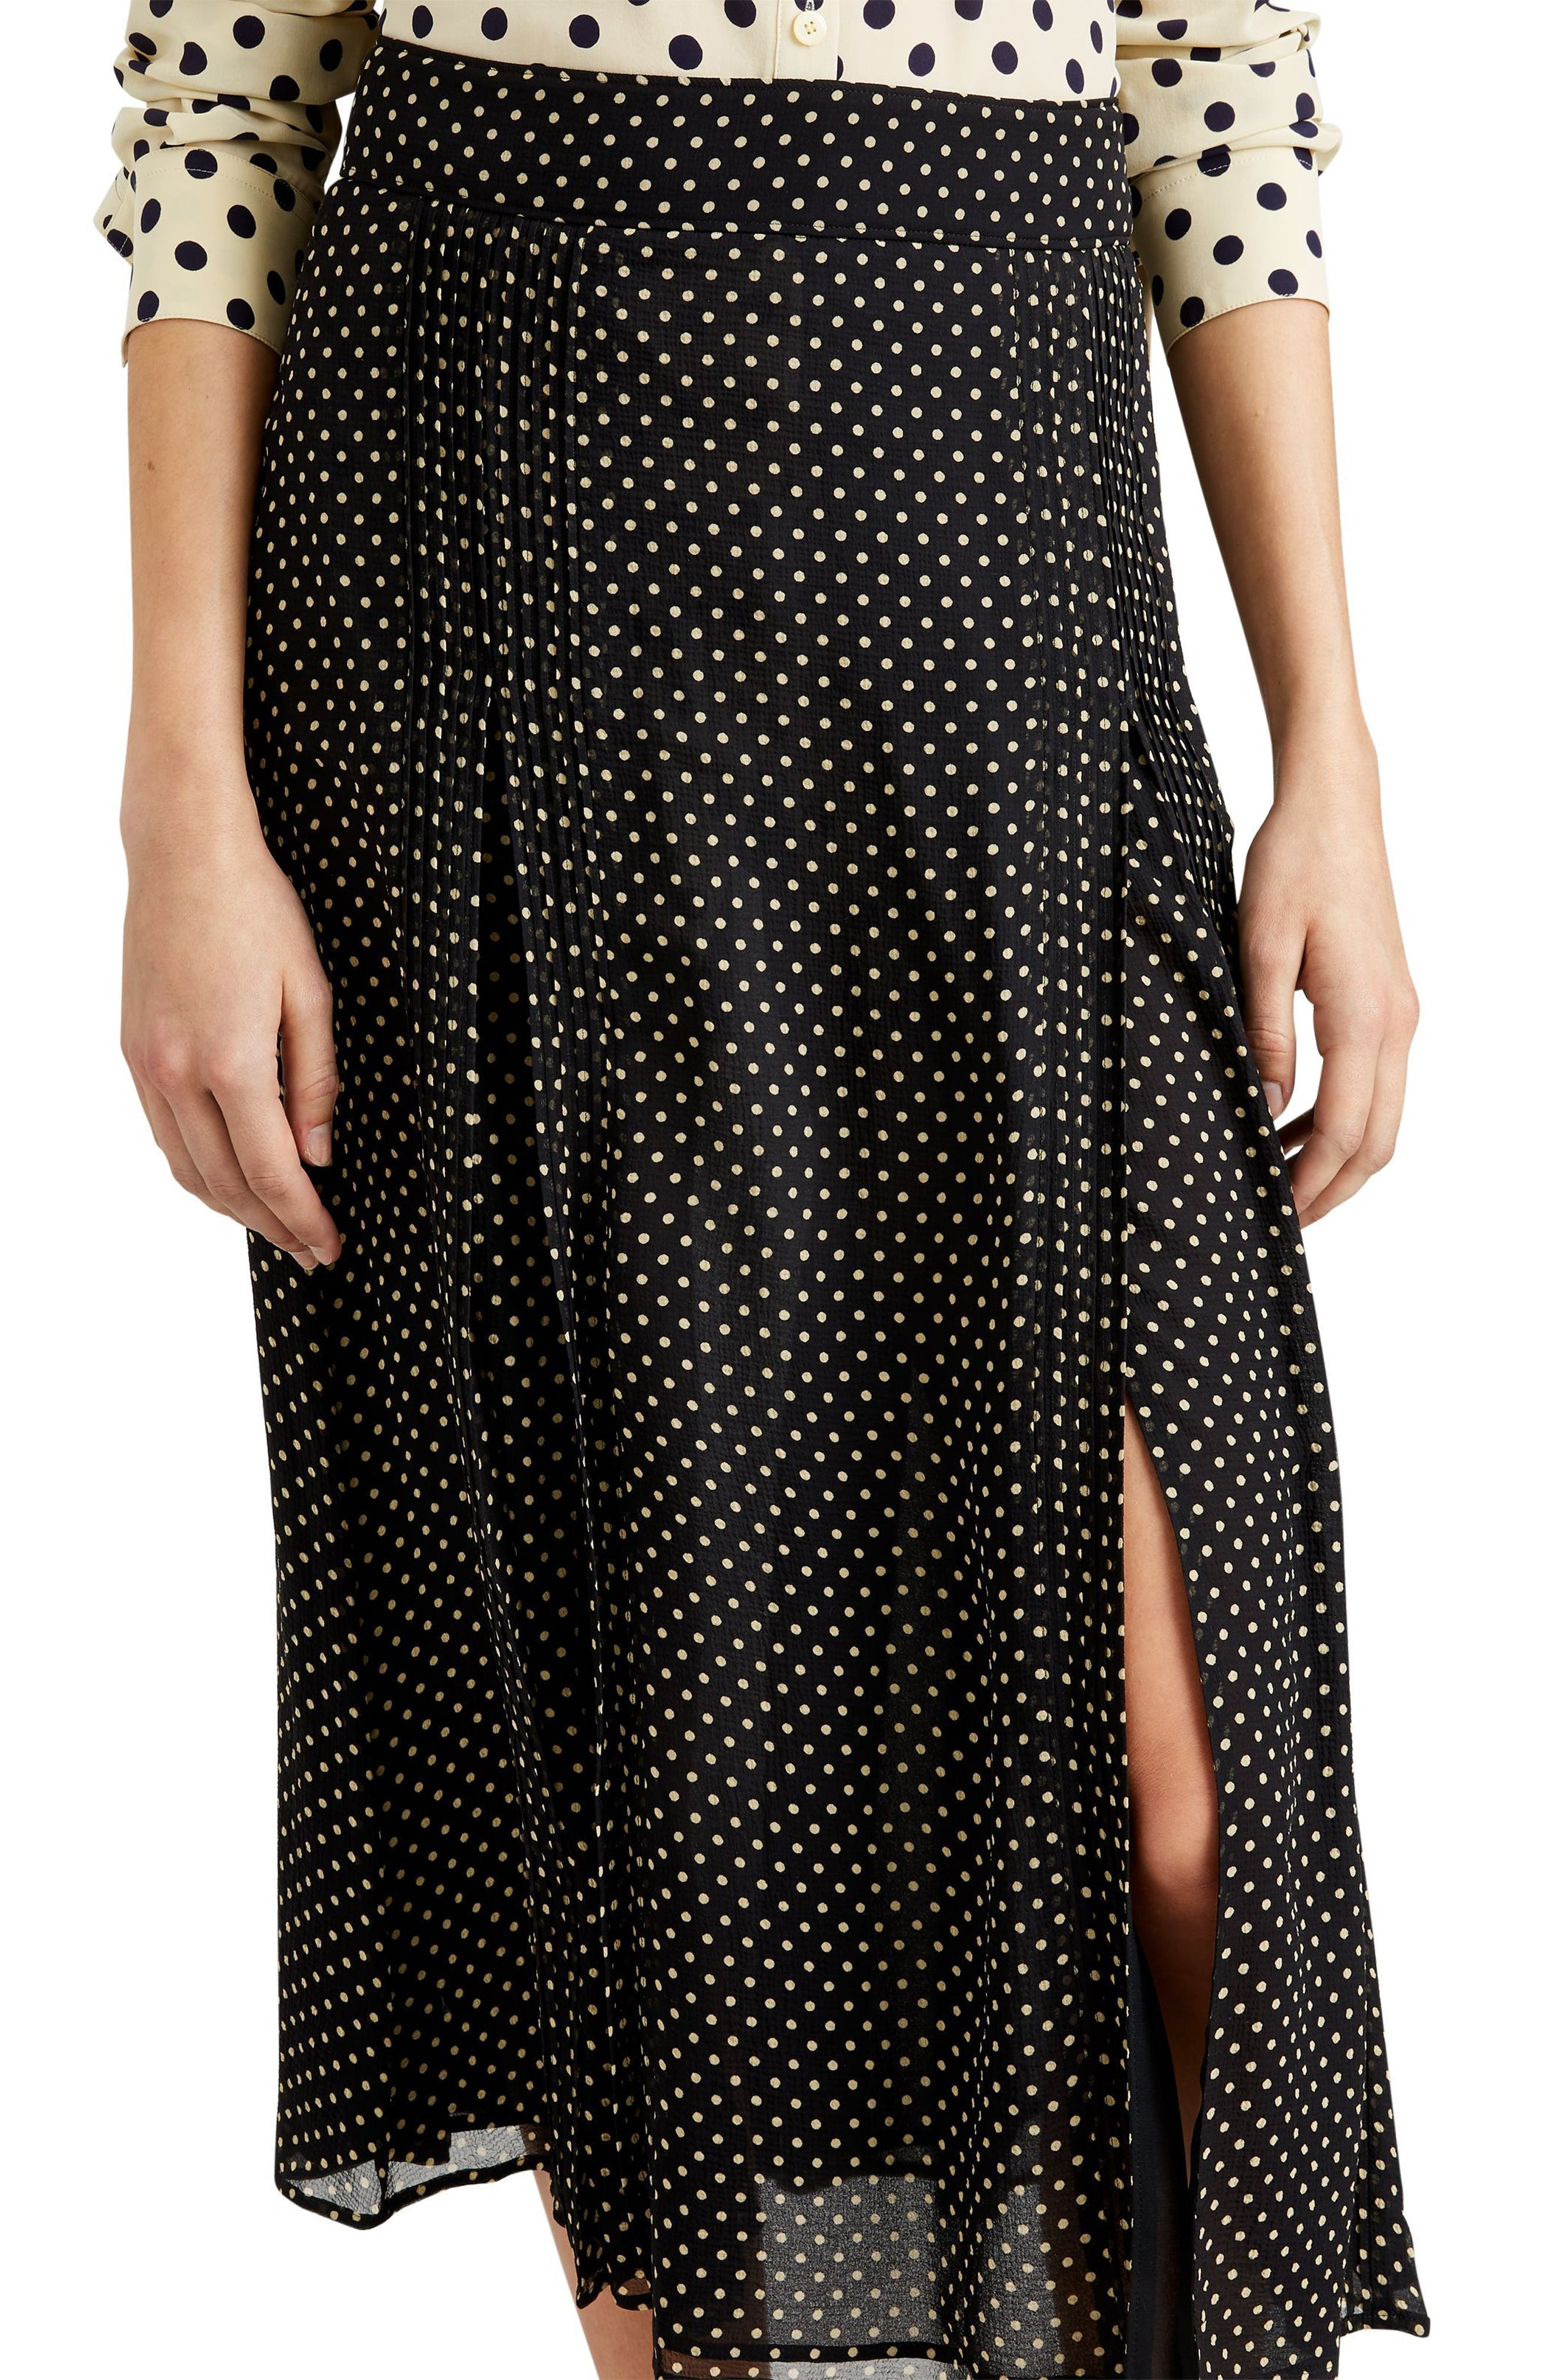 Fine Pintuck Dot Print Silk Skirt,                             Alternate thumbnail 3, color,                             Black